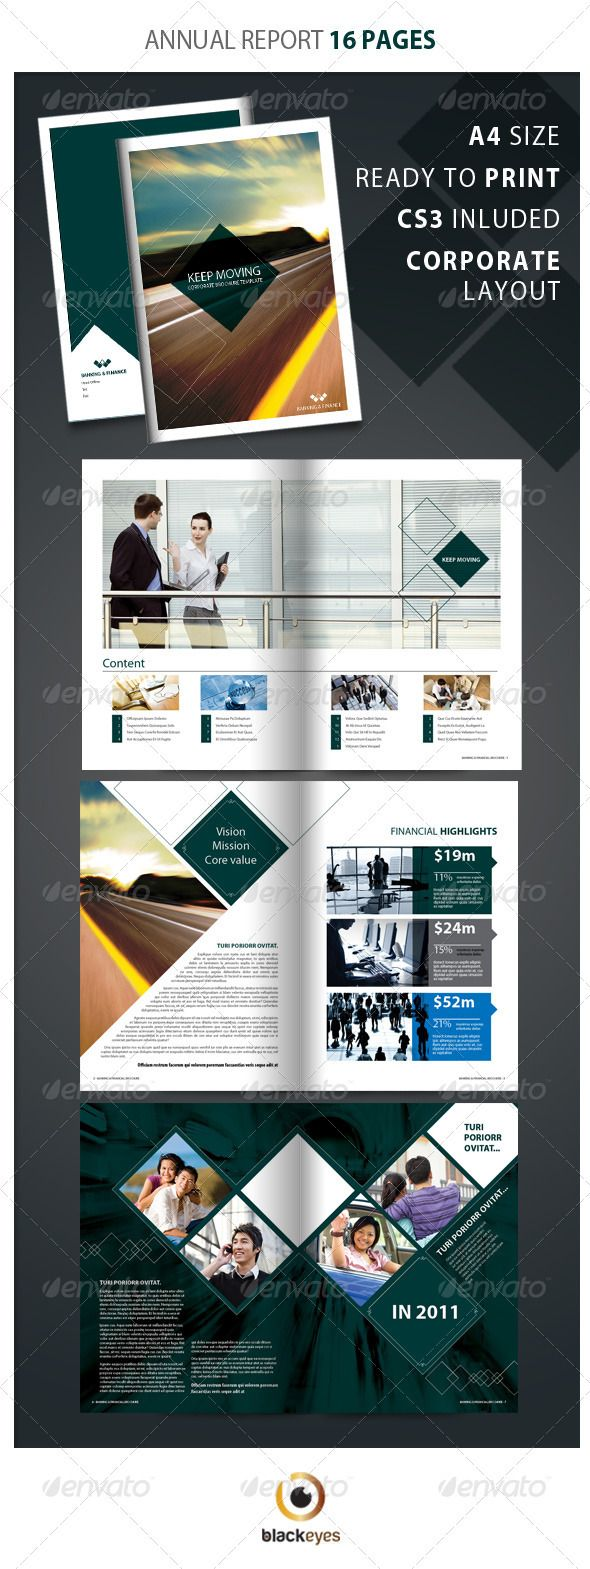 best images about annual reports annual report corporate annual report brochure